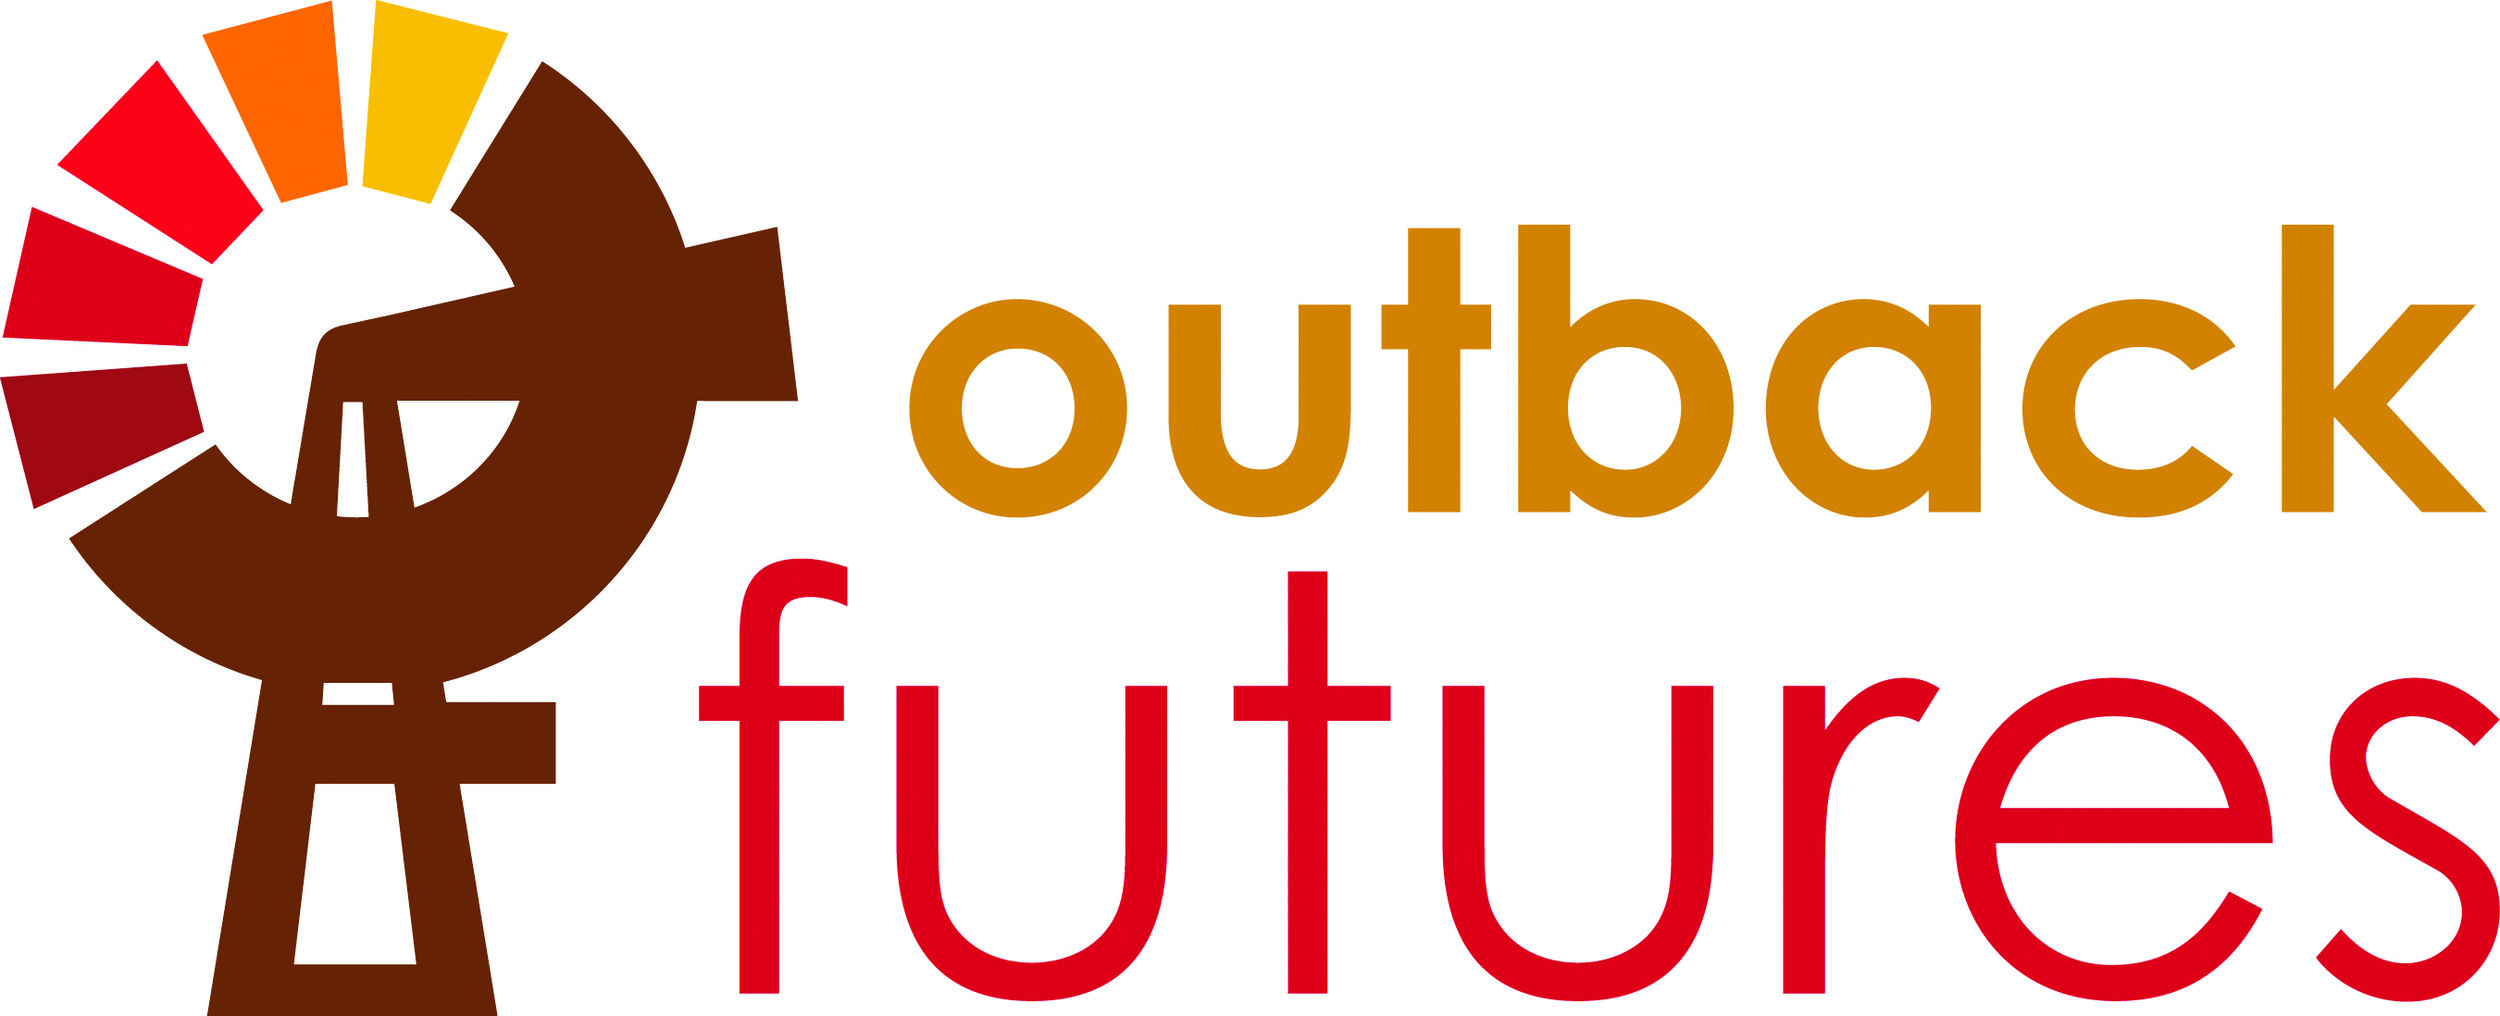 Outback Futures provides regular, professional and consistent mental and allied health and wellbeing services to rural and remote Queenslanders. -